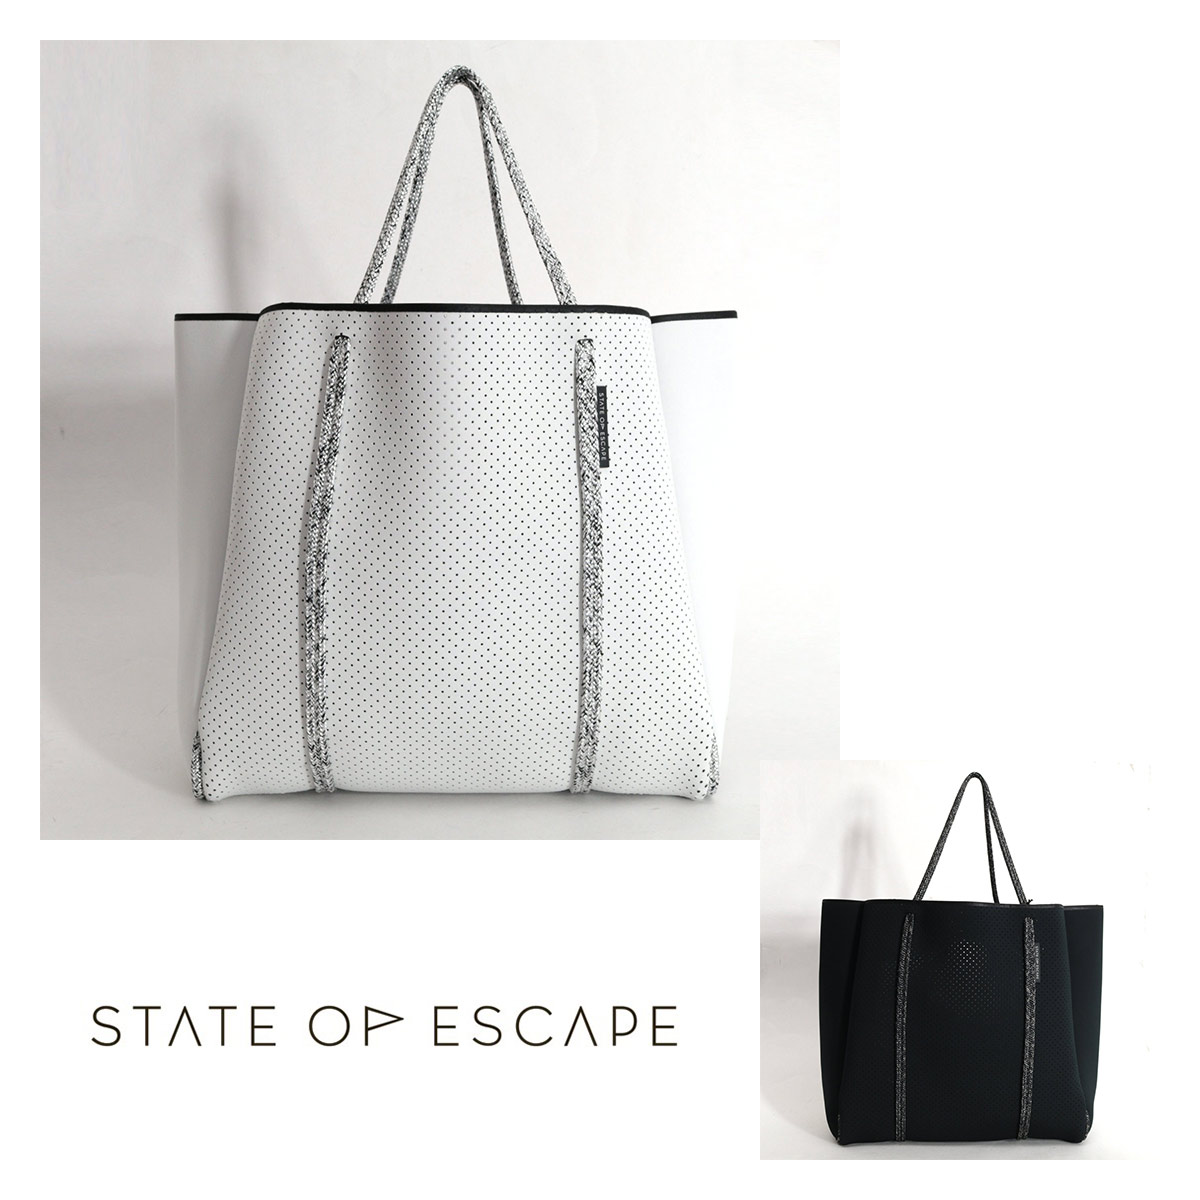 STATE OF ESCAPE CITYSCAPE MII トートバッグ